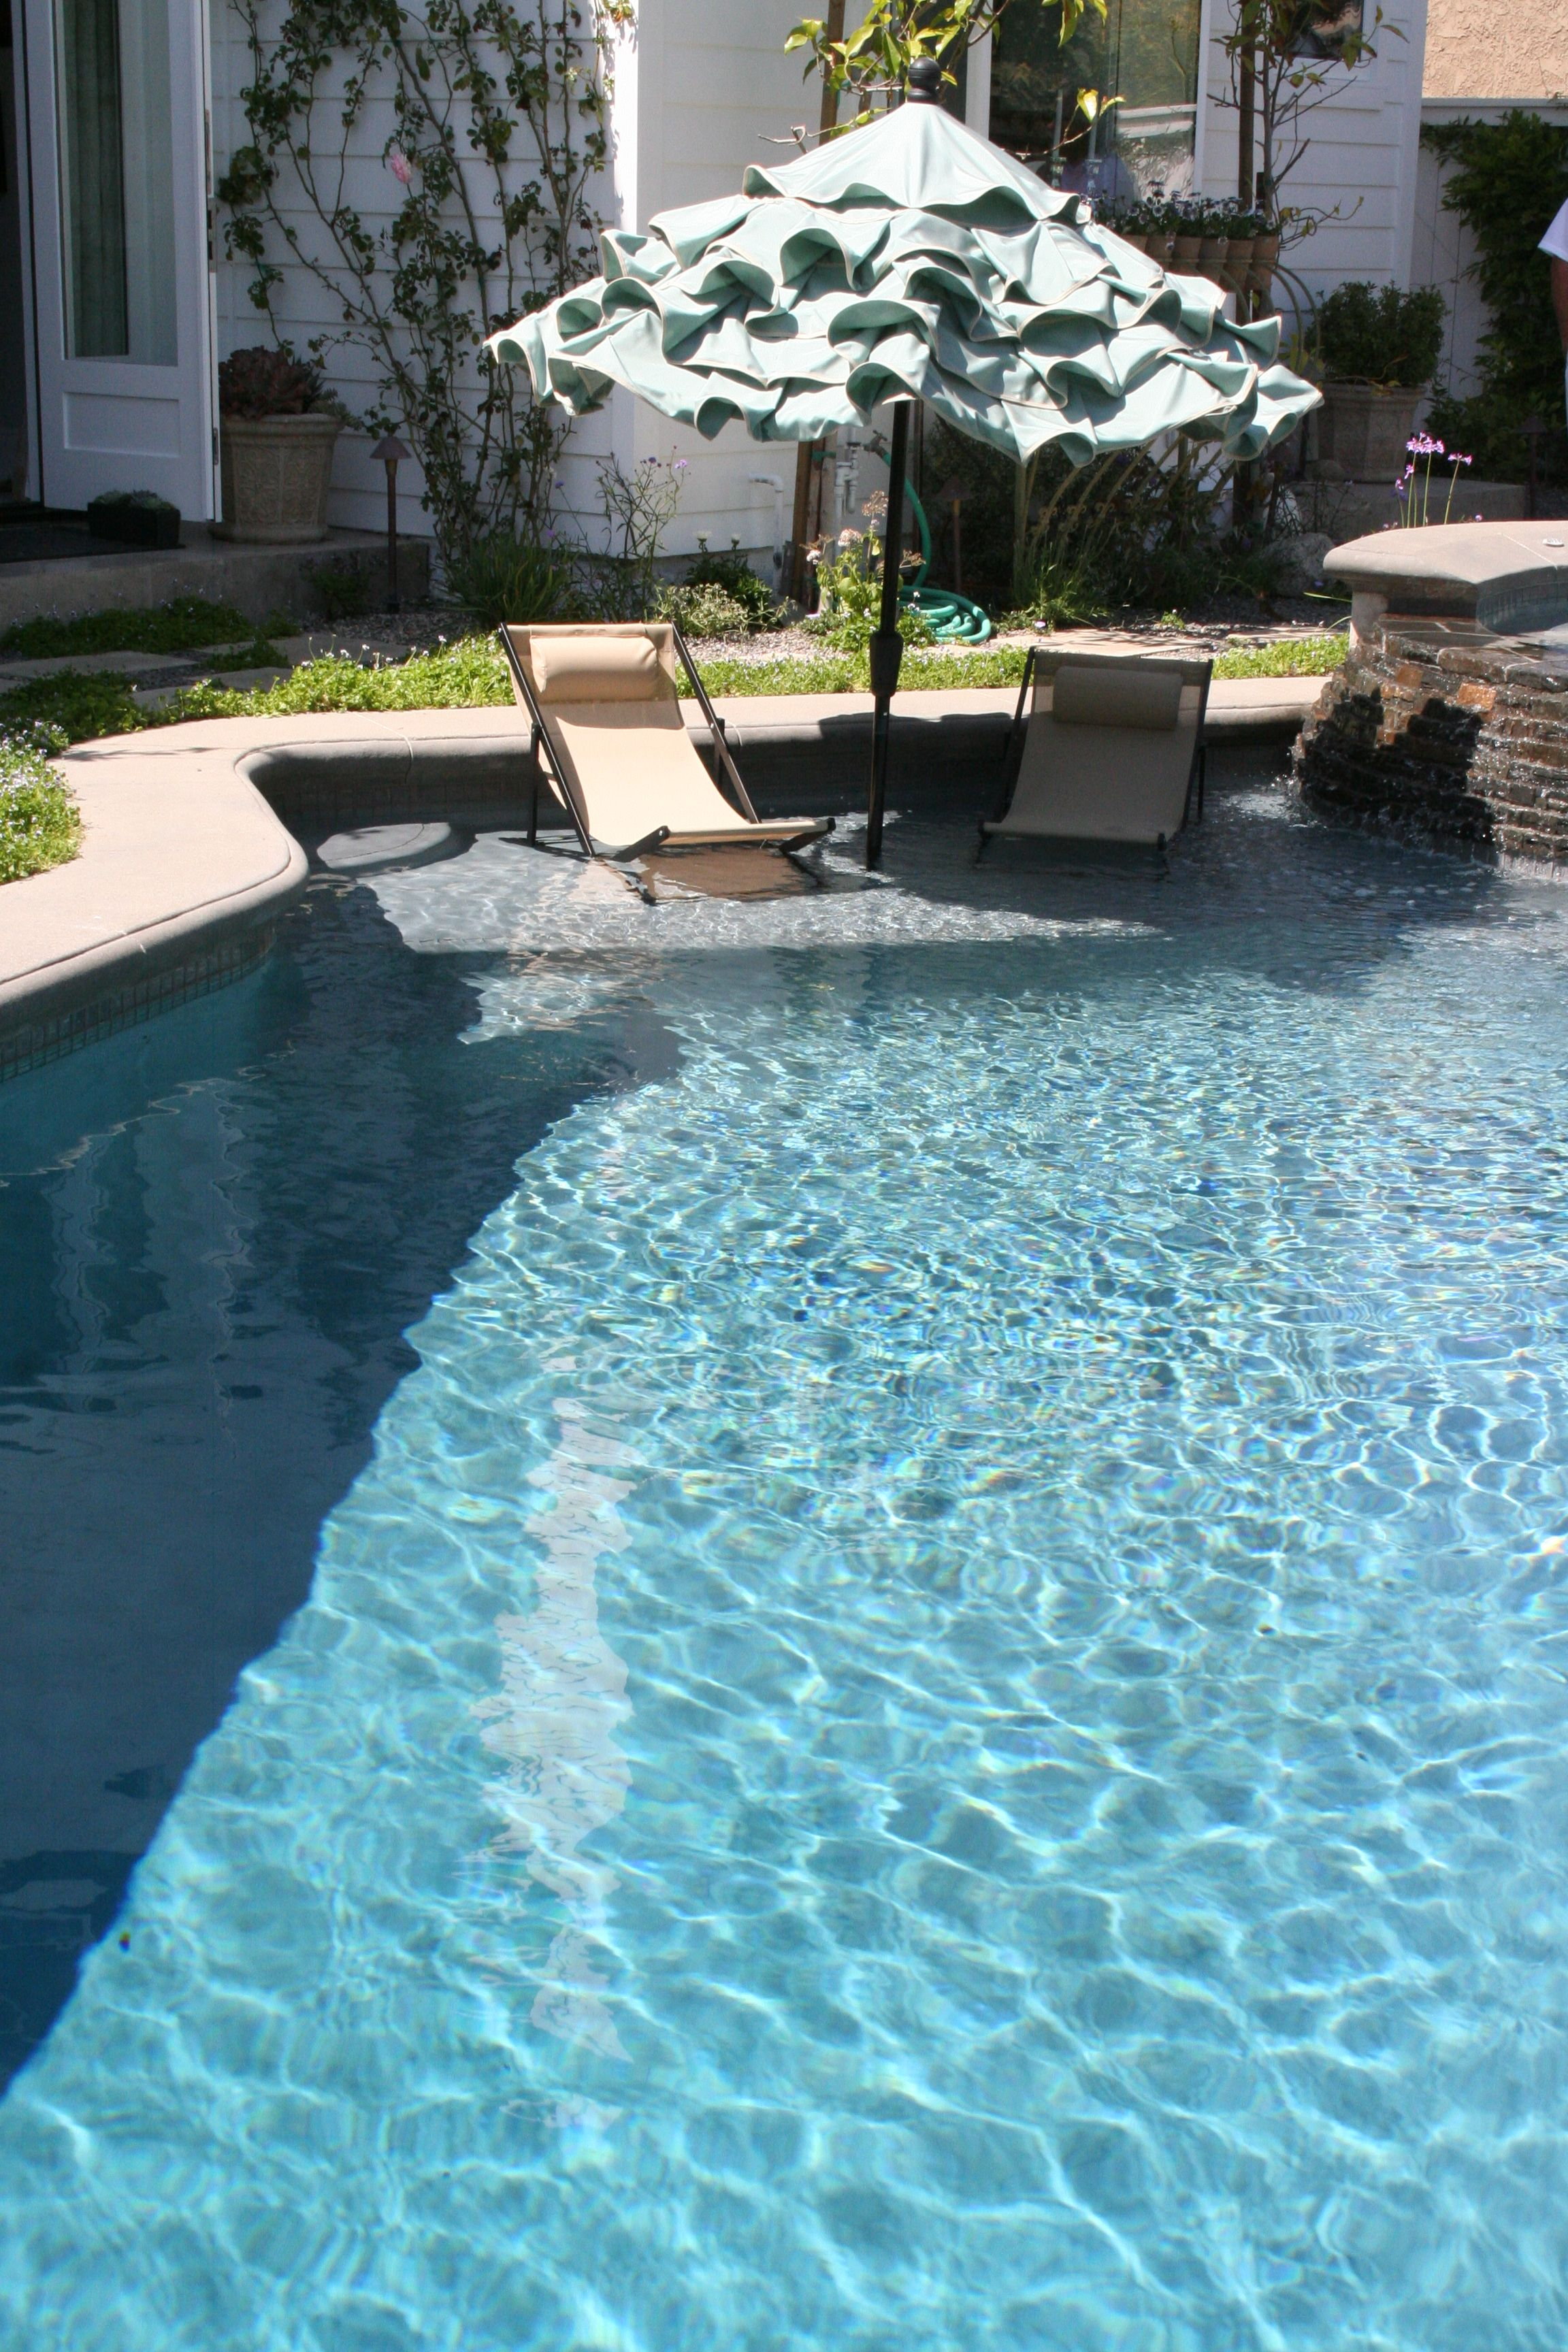 Umbrella In Pool Love These New Platform Areas The Sullivan Relax Chair And Stay Cool